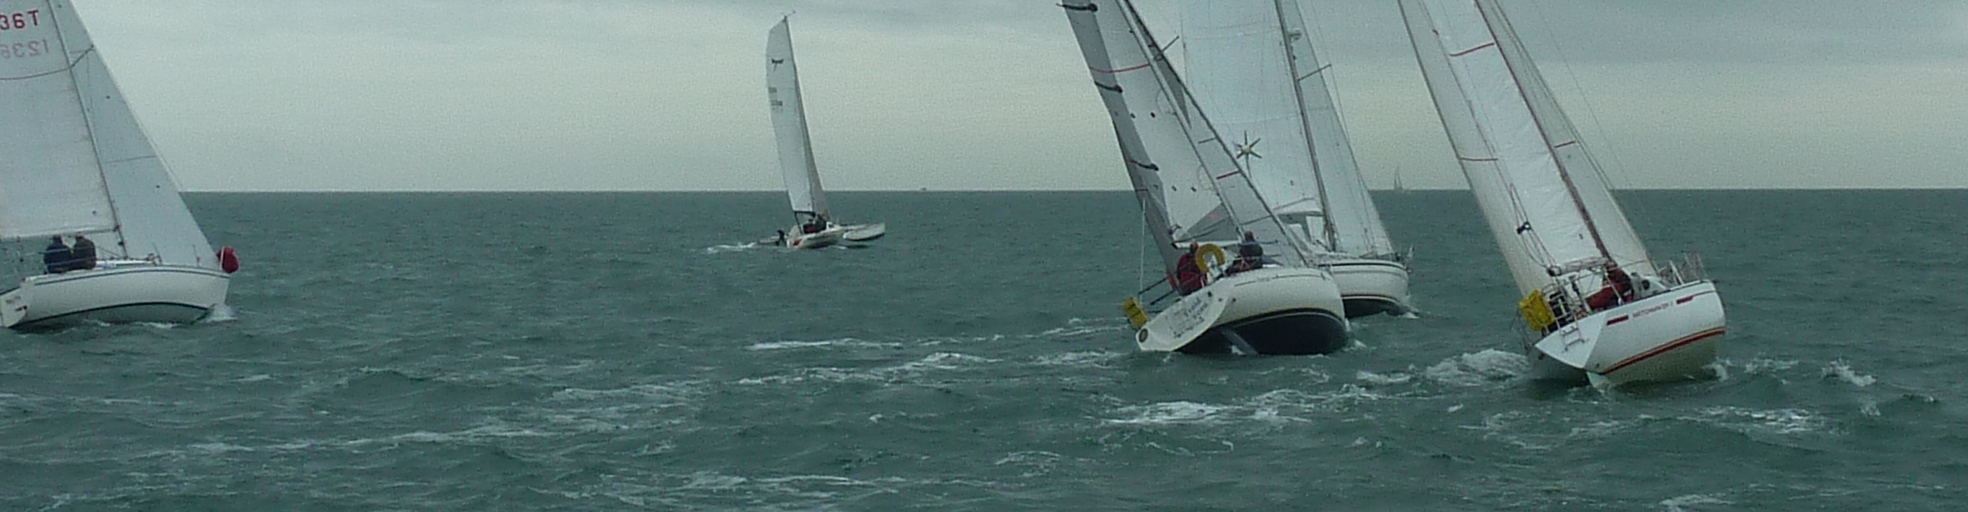 PYRA 2015 Two Handed Regatta 28L